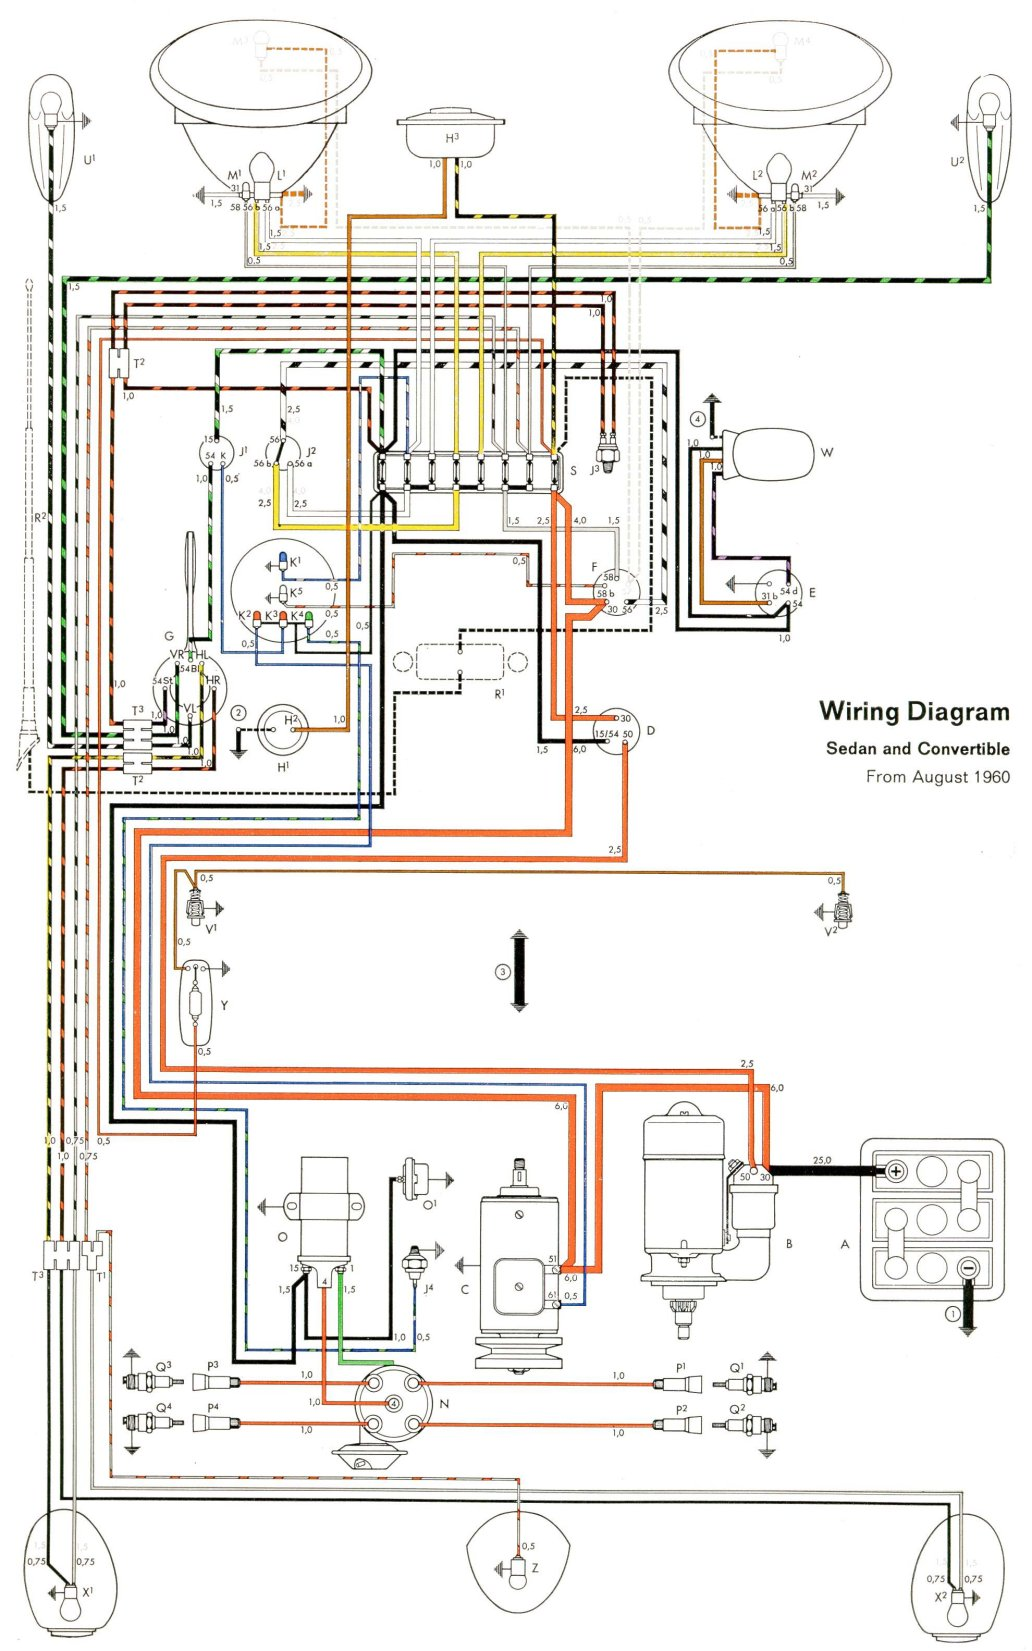 bug_61 thesamba com type 1 wiring diagrams vw beetle wiring diagram at readyjetset.co